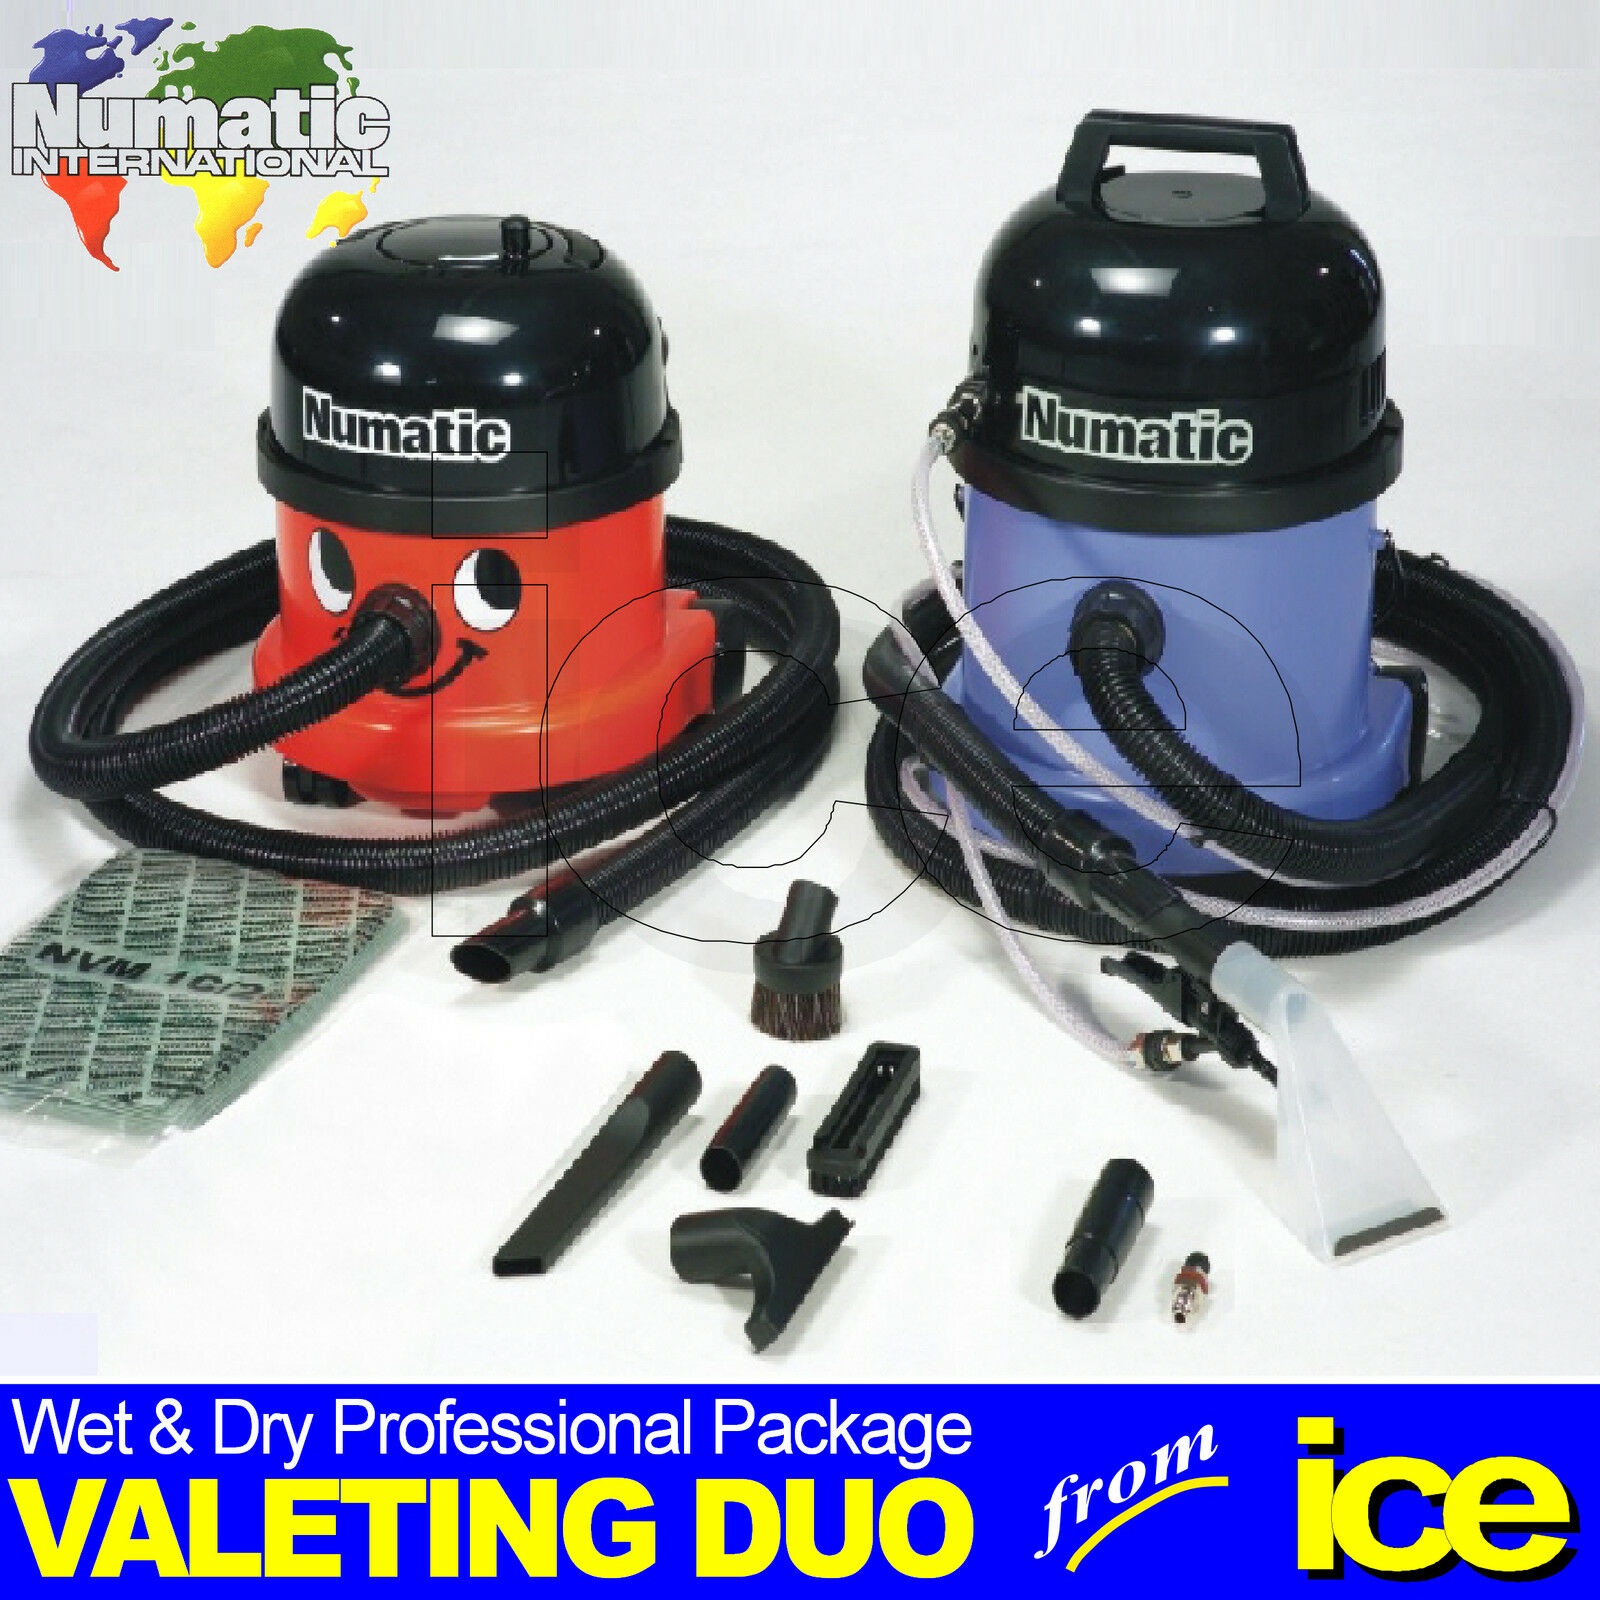 numatic nrv 200 22 dry vacuum ct 370 2 wet extraction upholstery valet cleaner. Black Bedroom Furniture Sets. Home Design Ideas